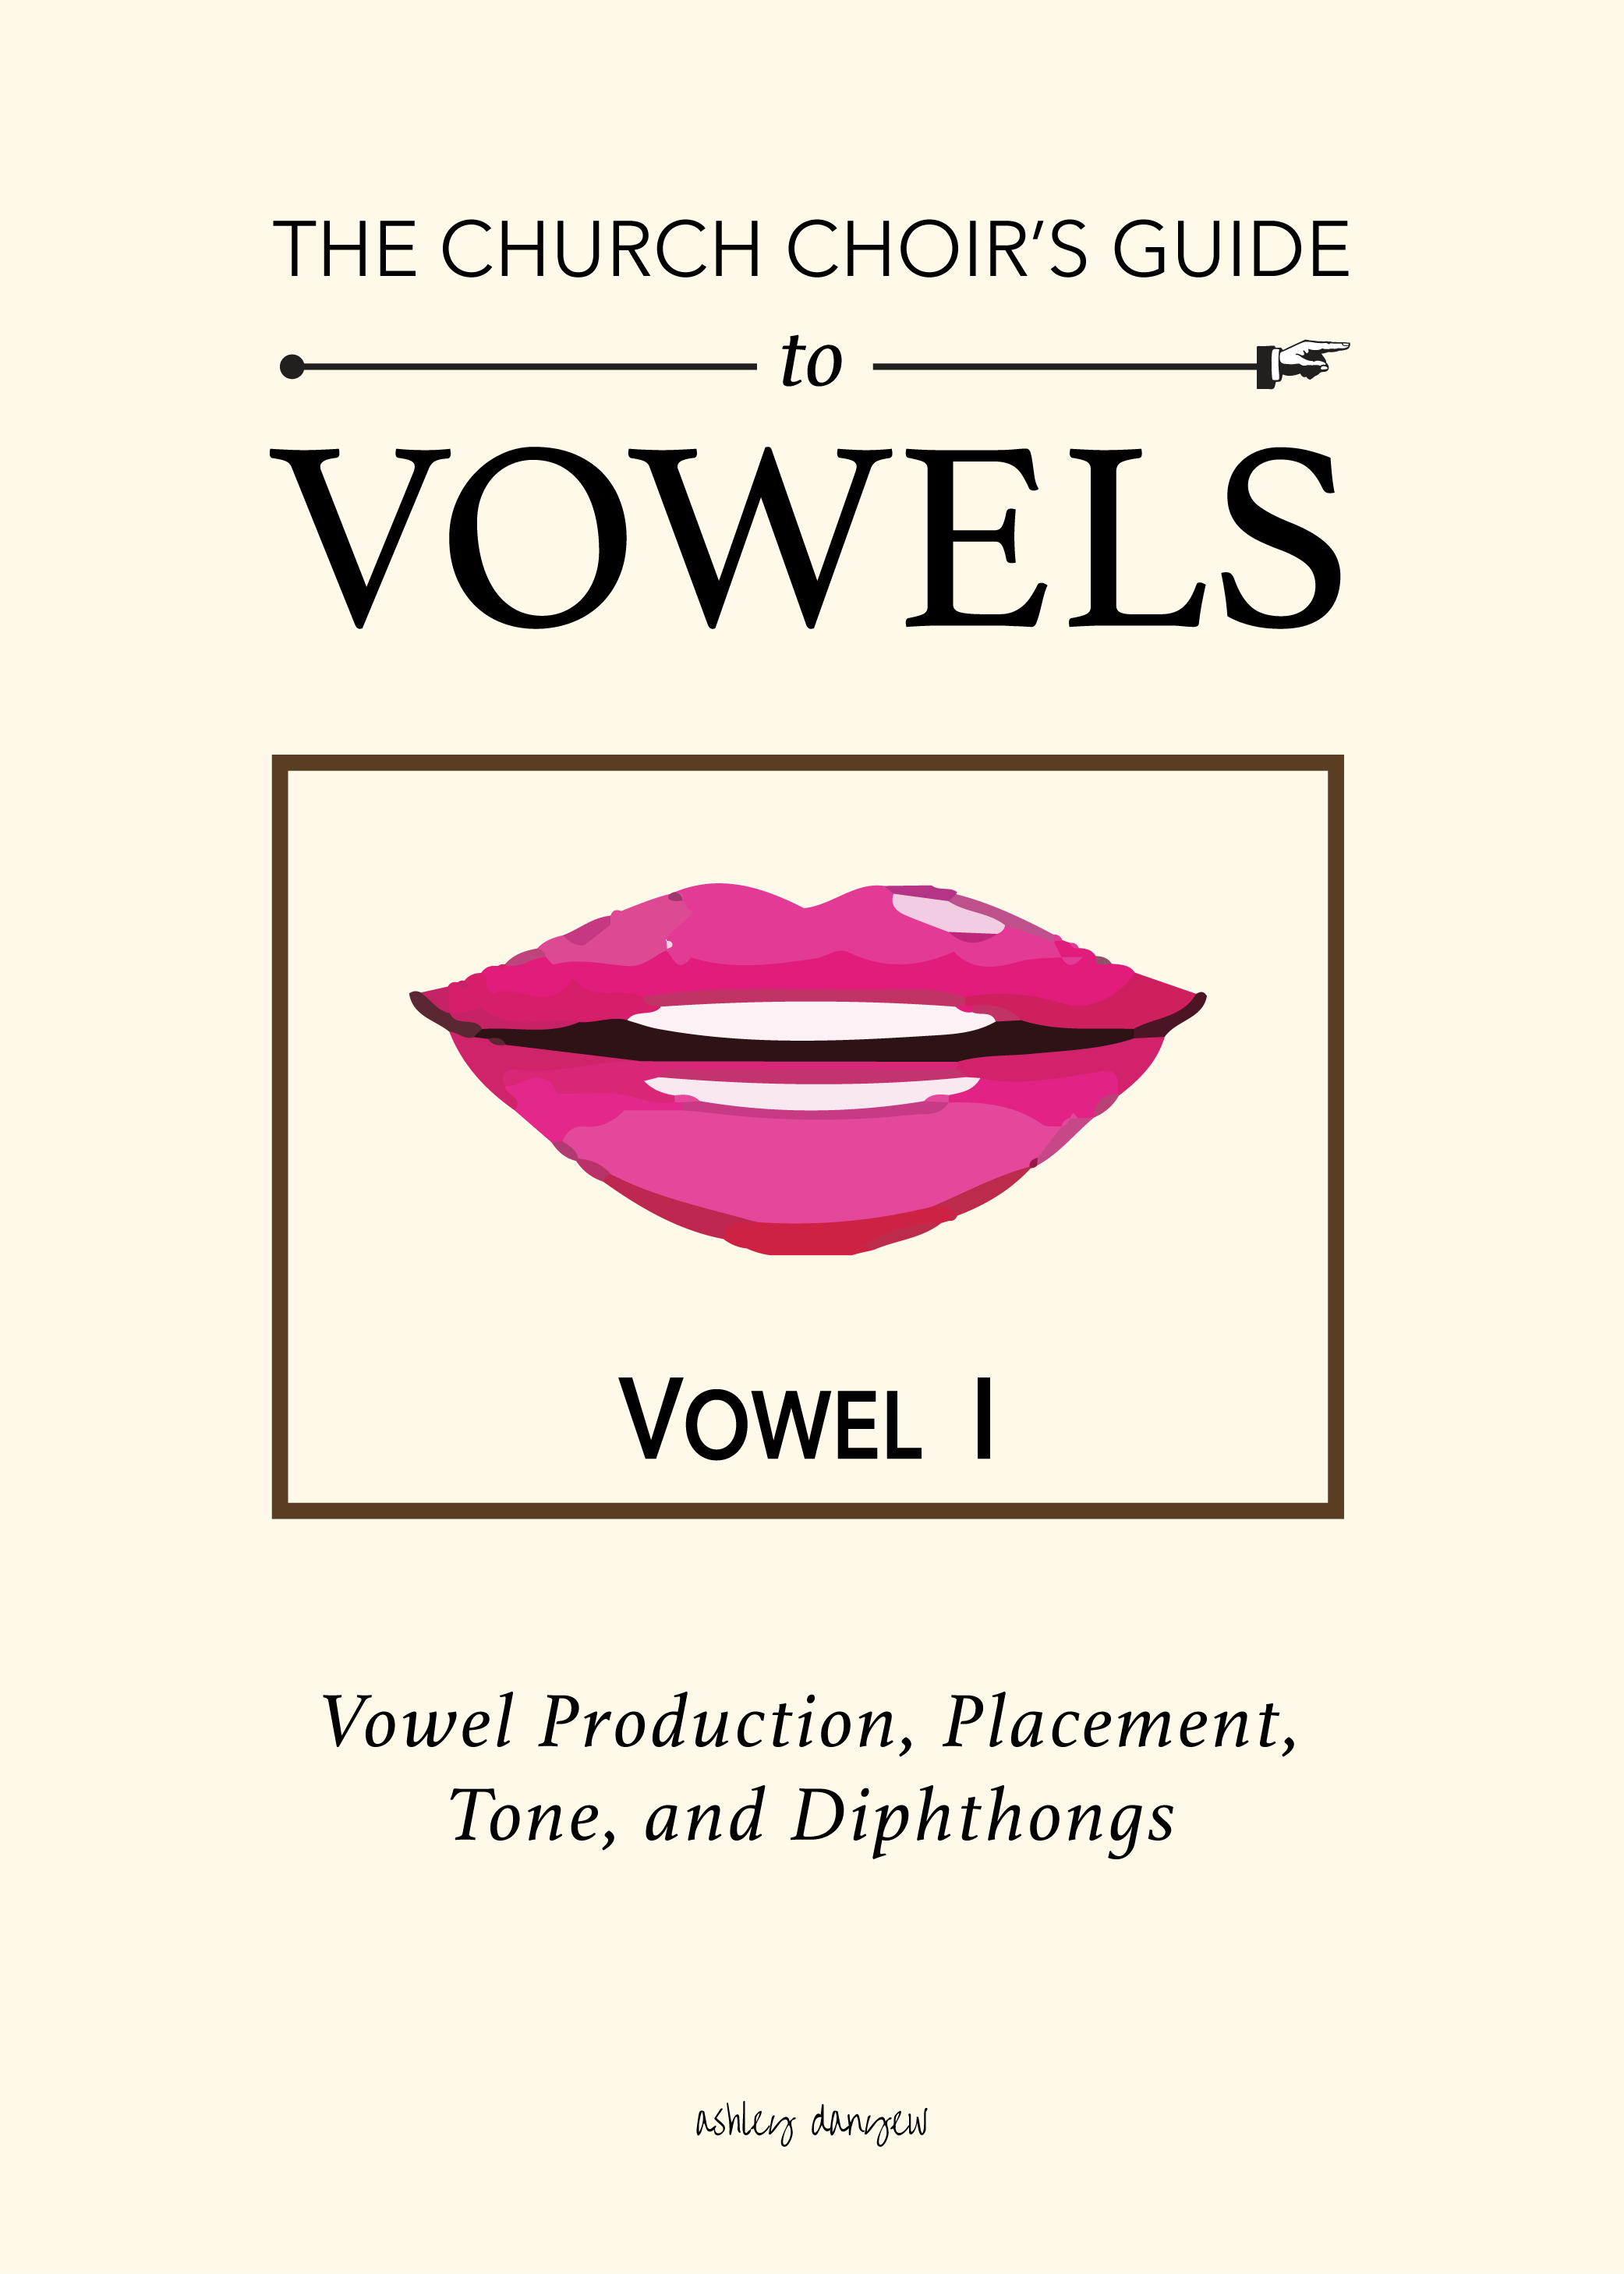 The church choir's guide to vowels: vowel production, placement, tone, and diphthongs | @ashleydanyew